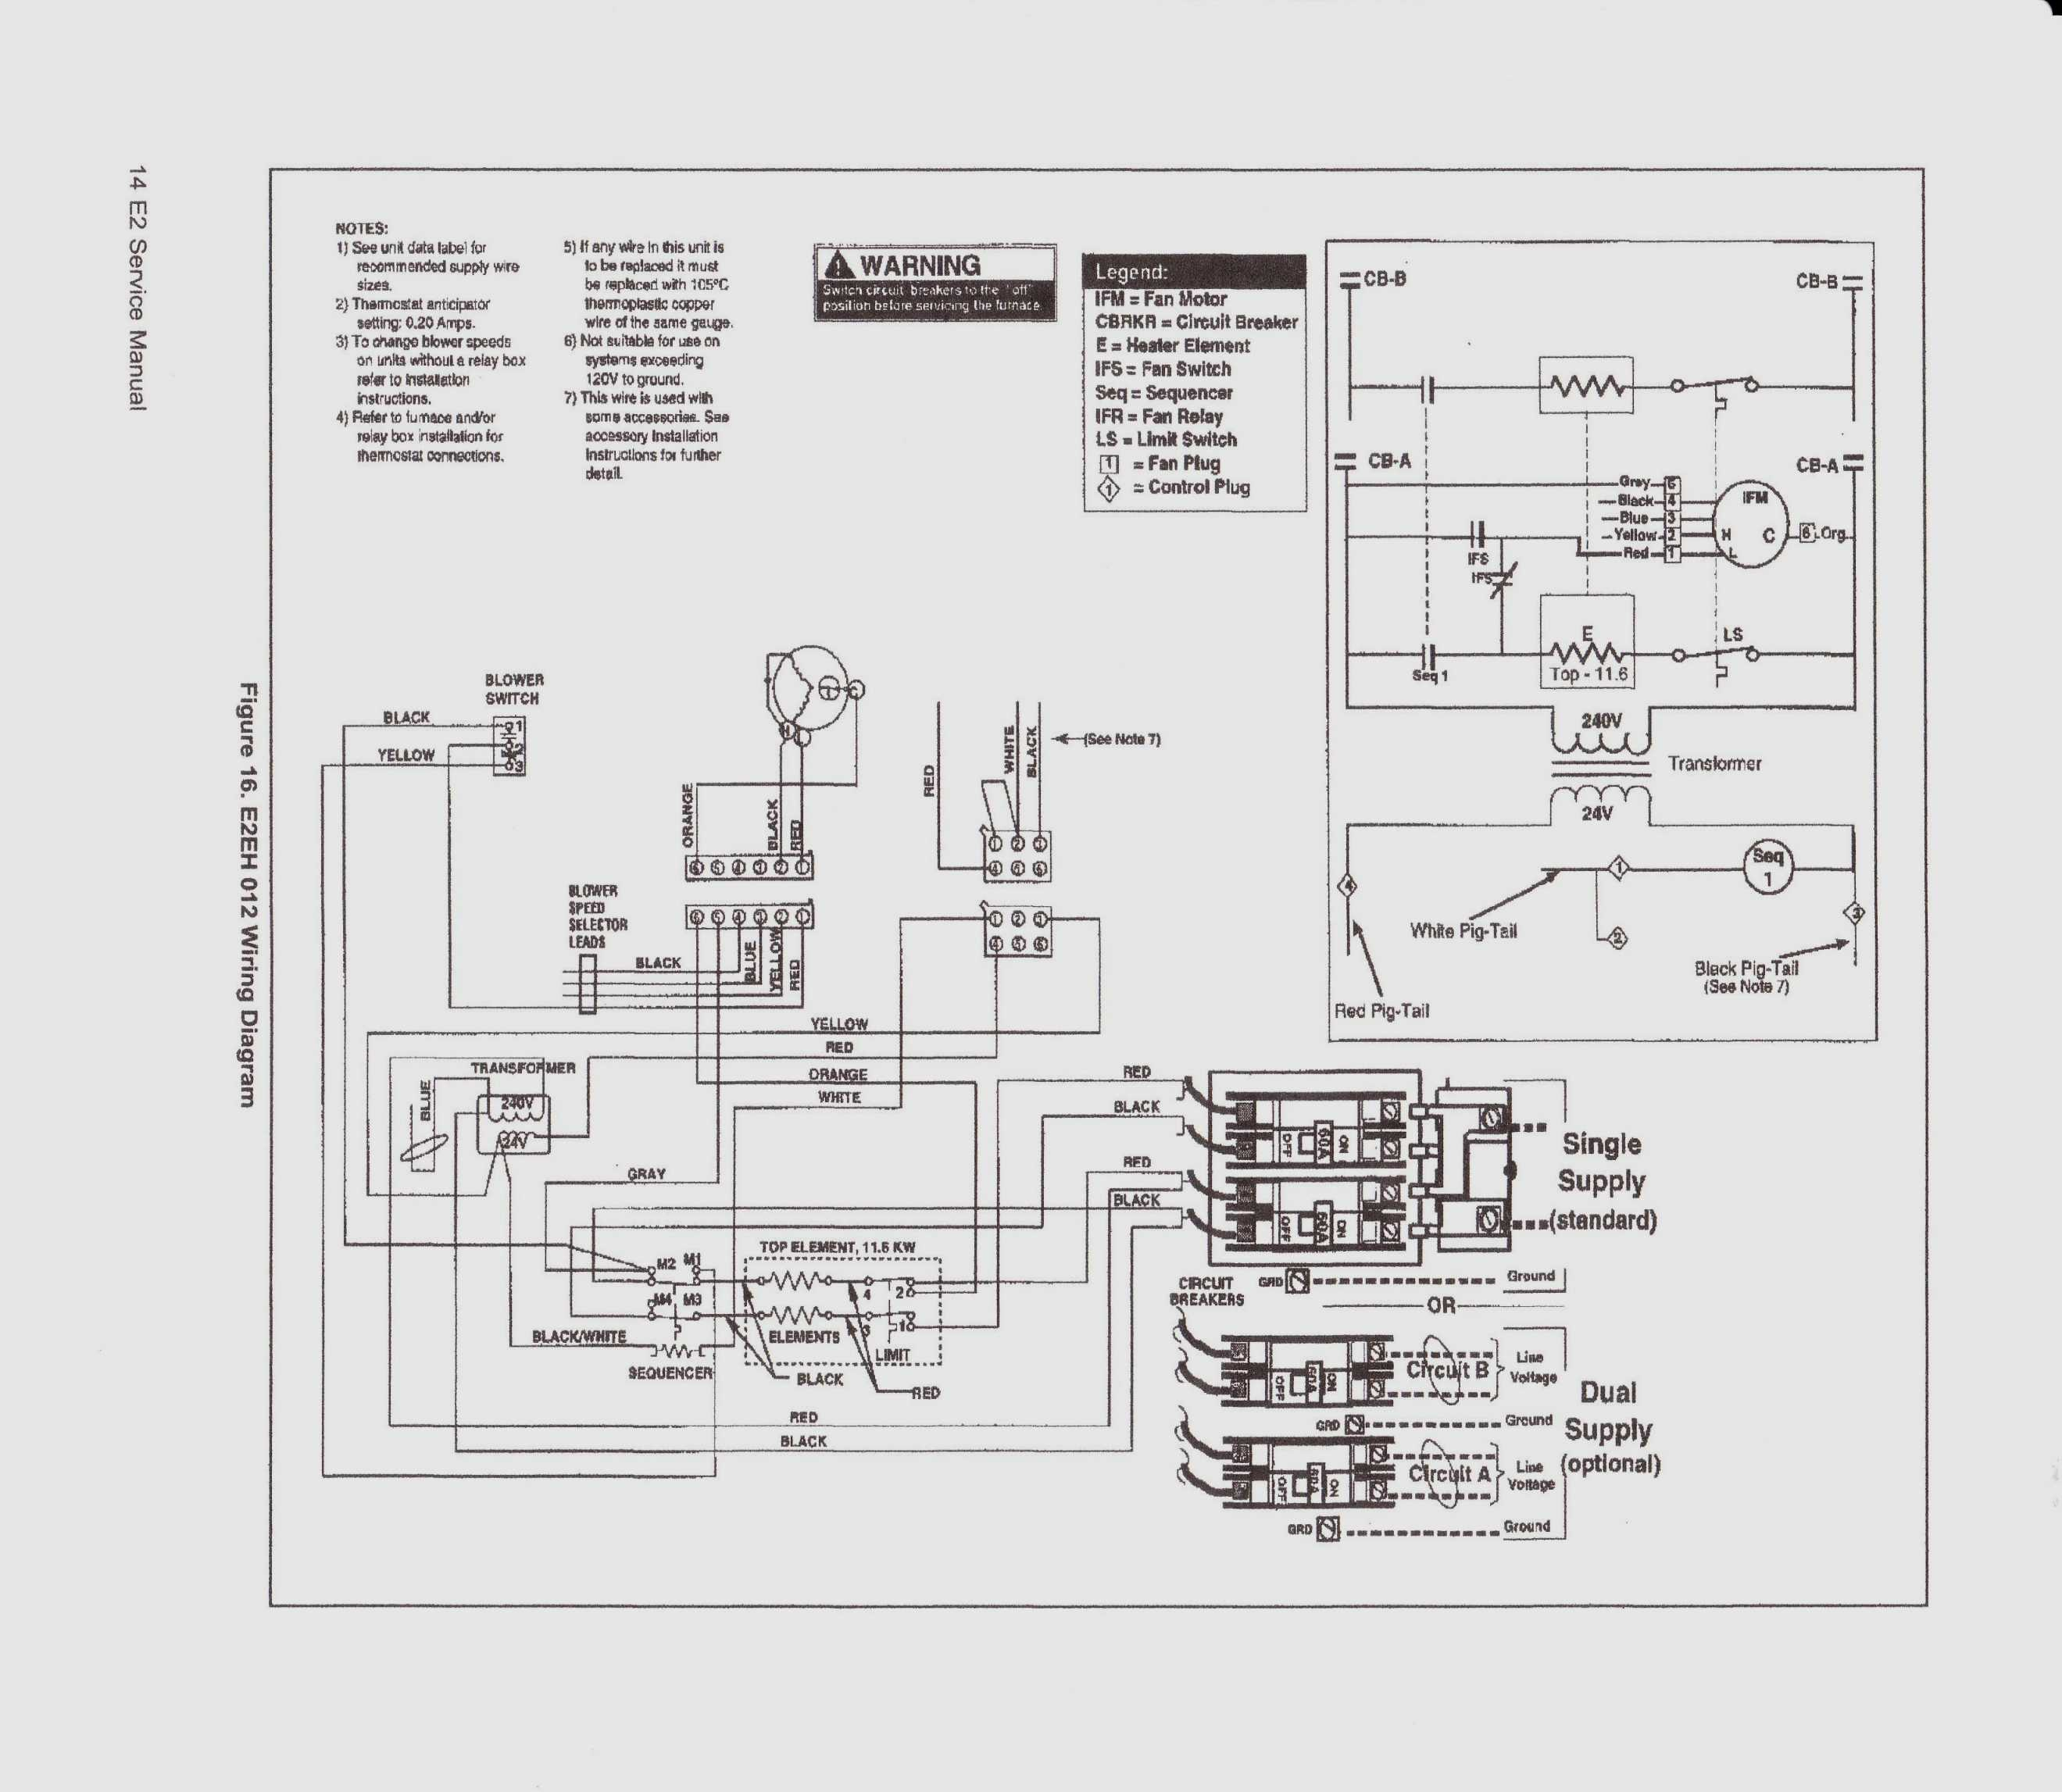 wiring diagram for nest 2 thermostat with rheem heat pump